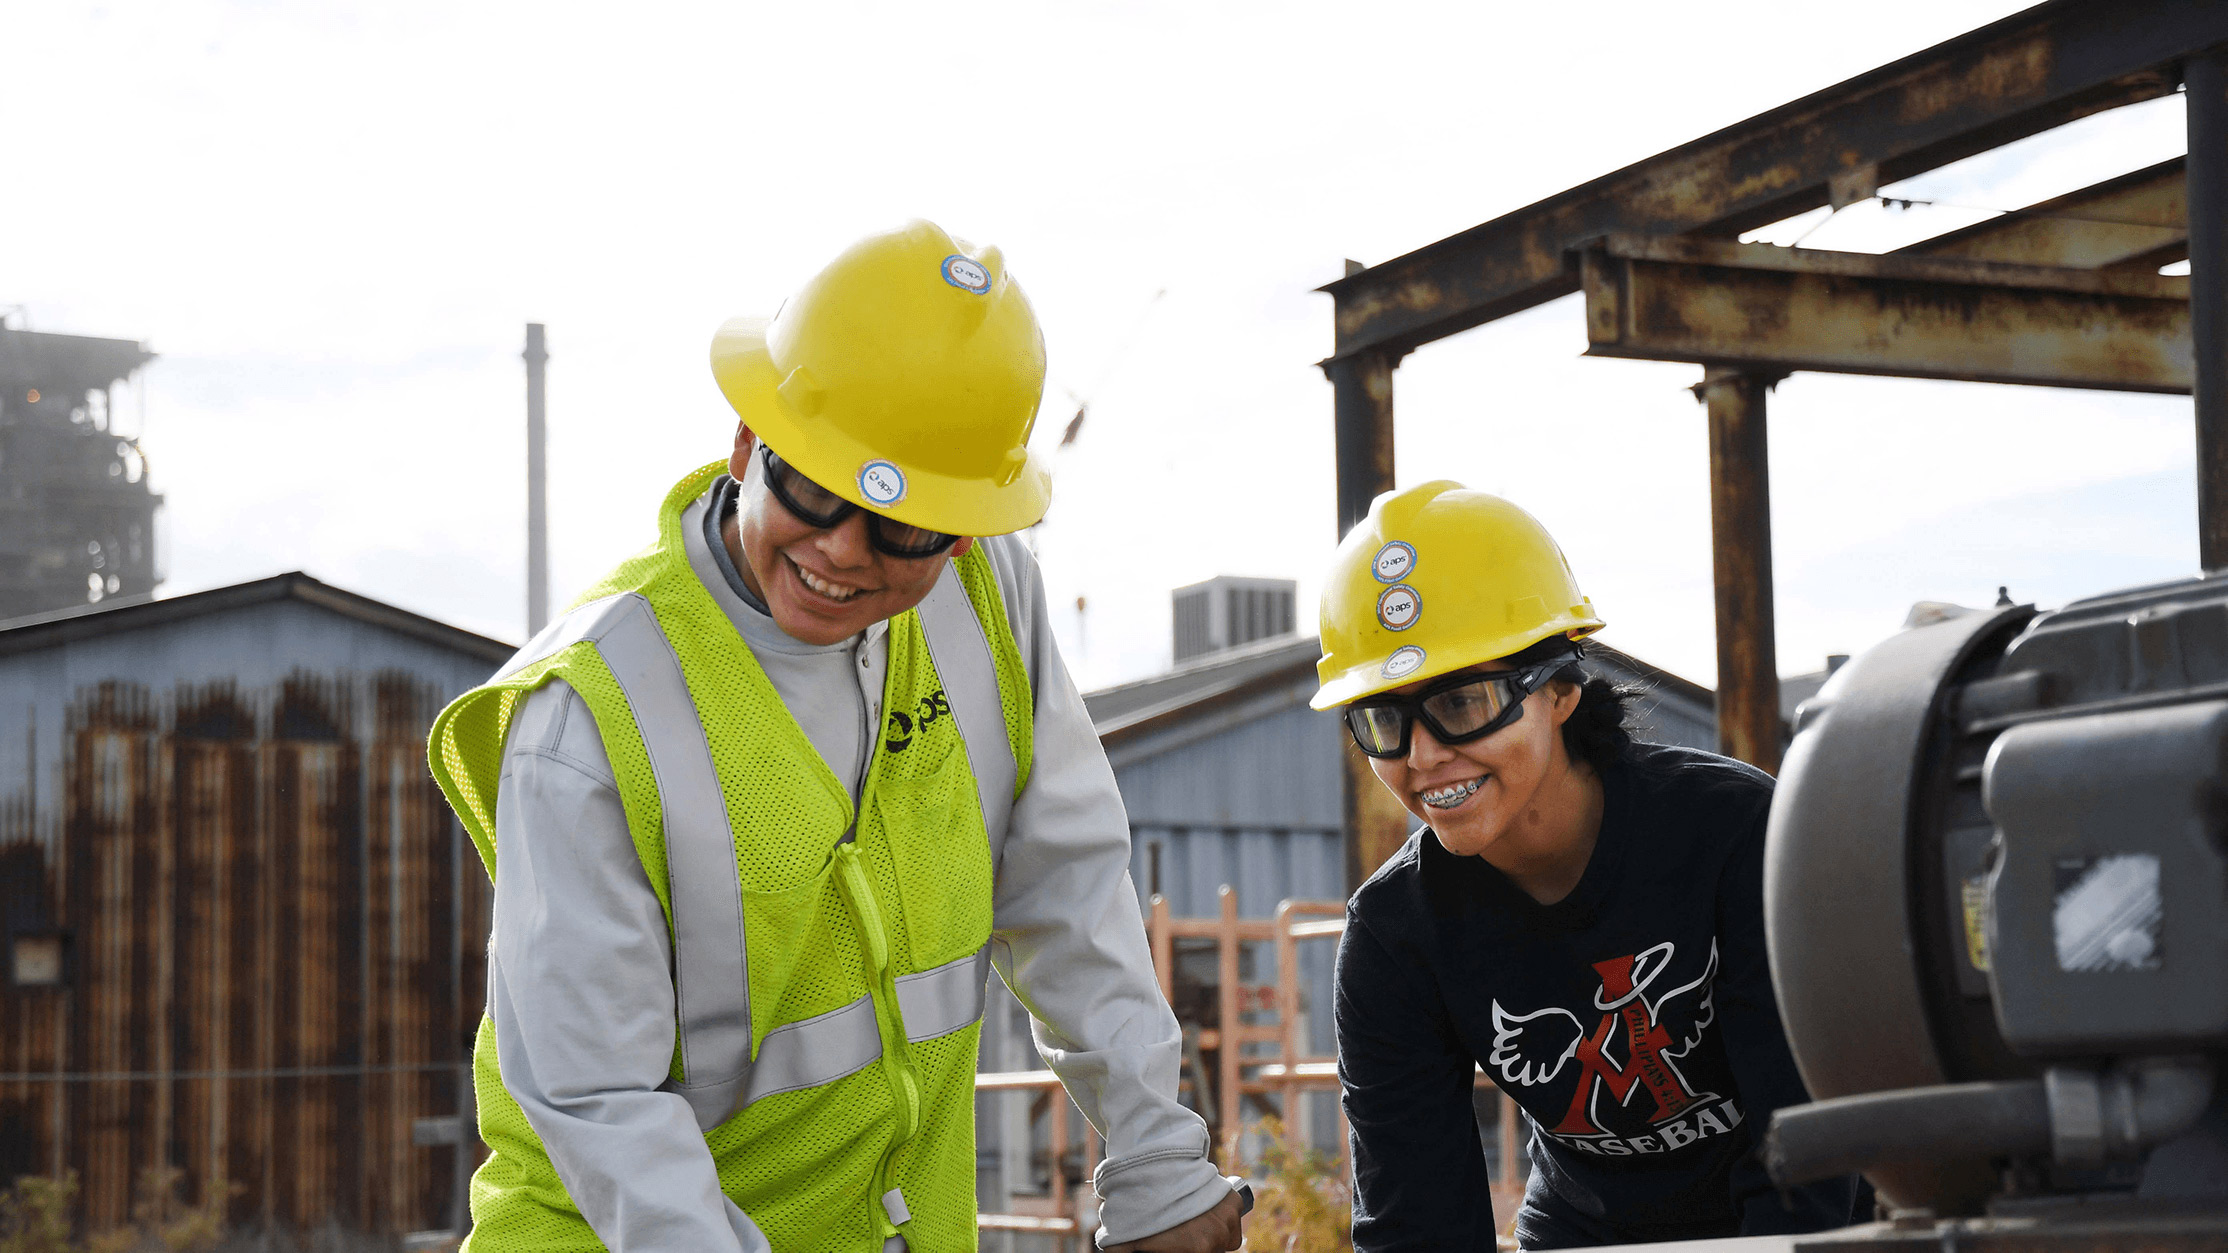 Two APS employees smiling while working at a power plant.